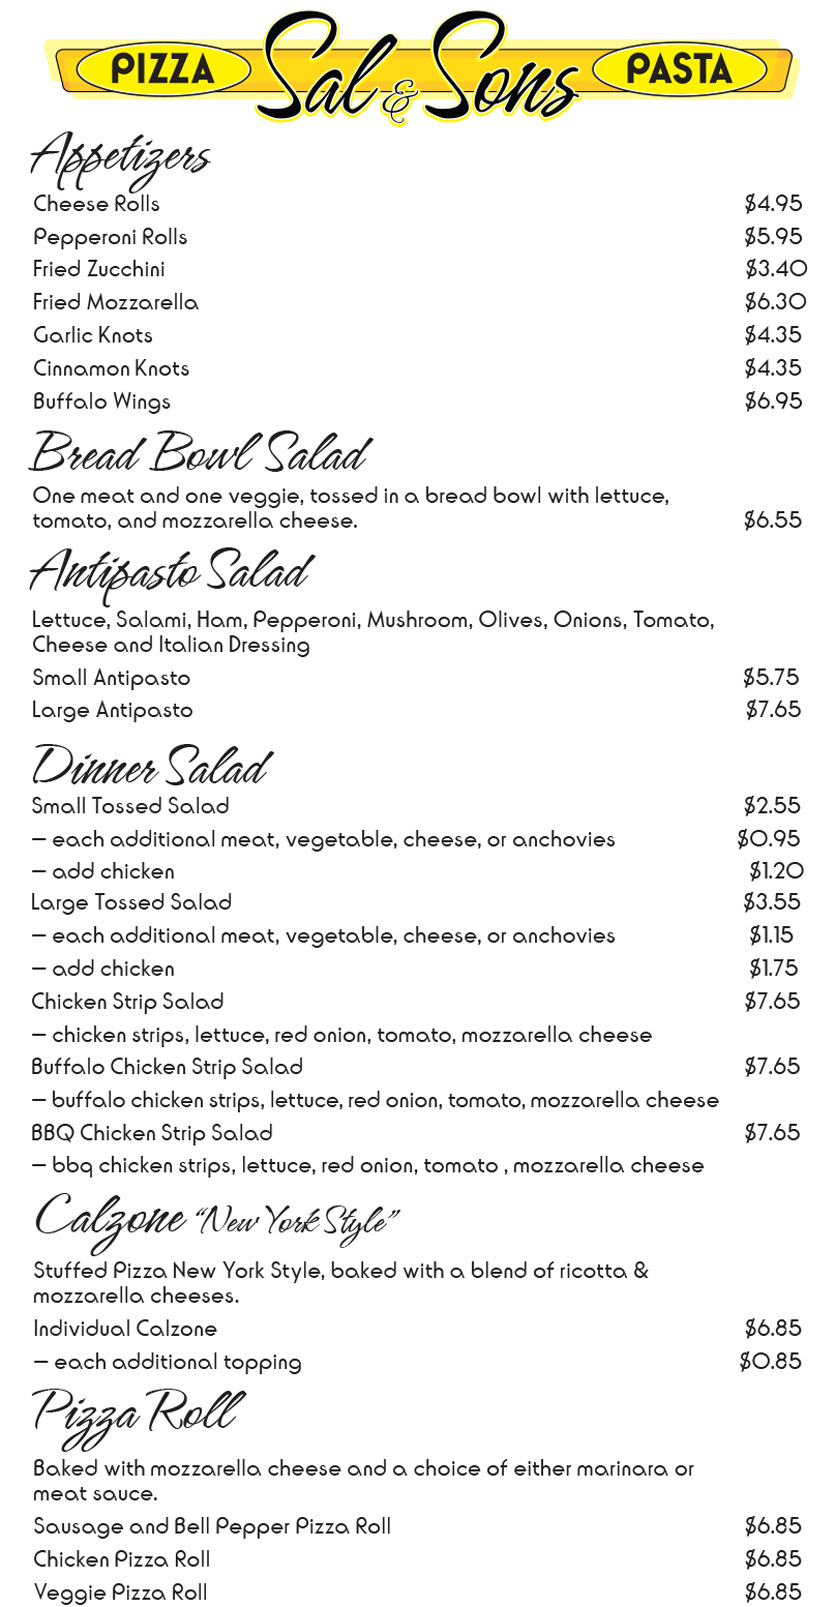 Sal-and-Sons-Pizza-Ontario-restaurant-menus-1242398-SalSons_Menu_1